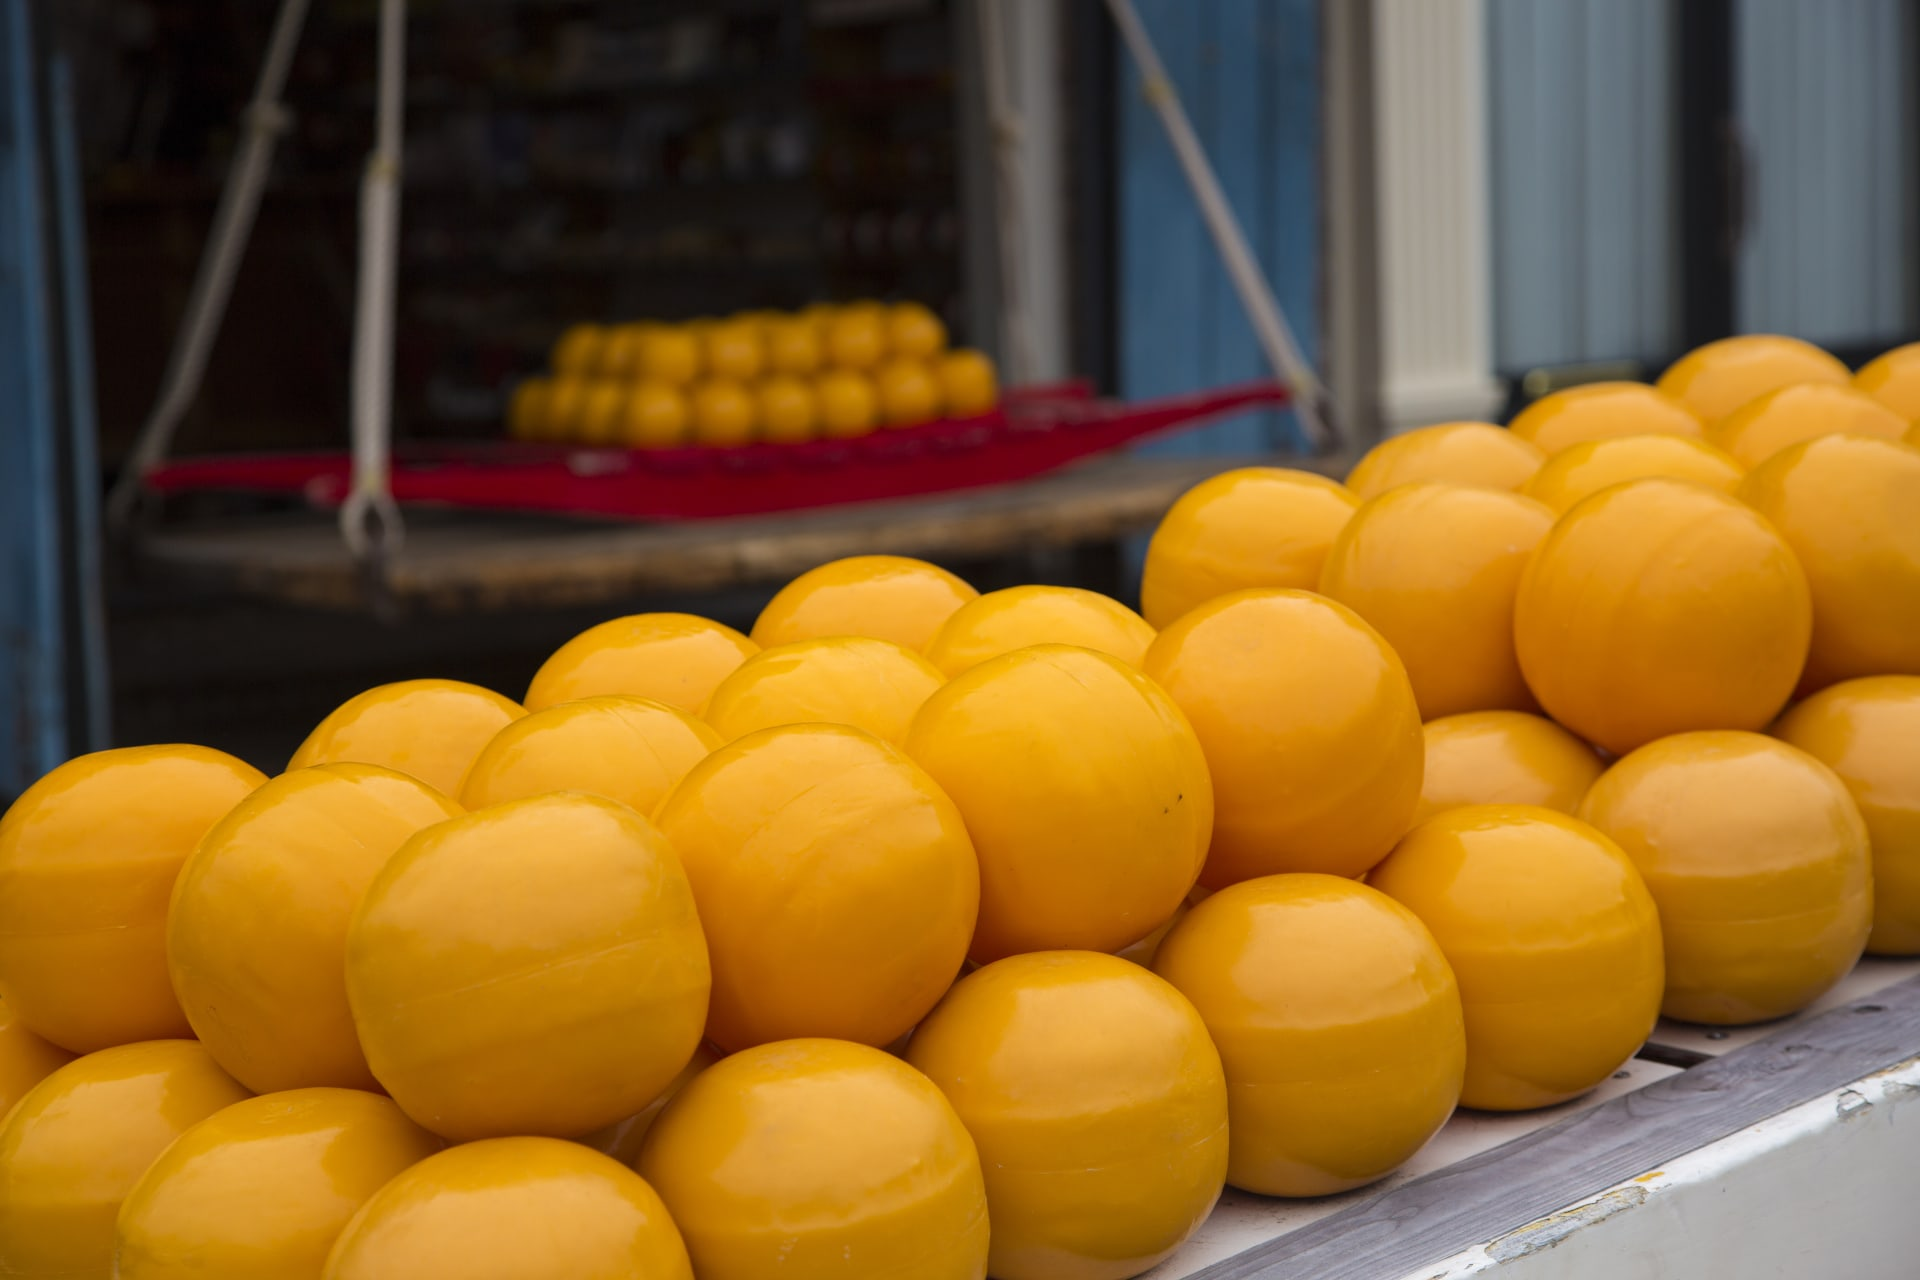 Edam - Edam Cheese Market